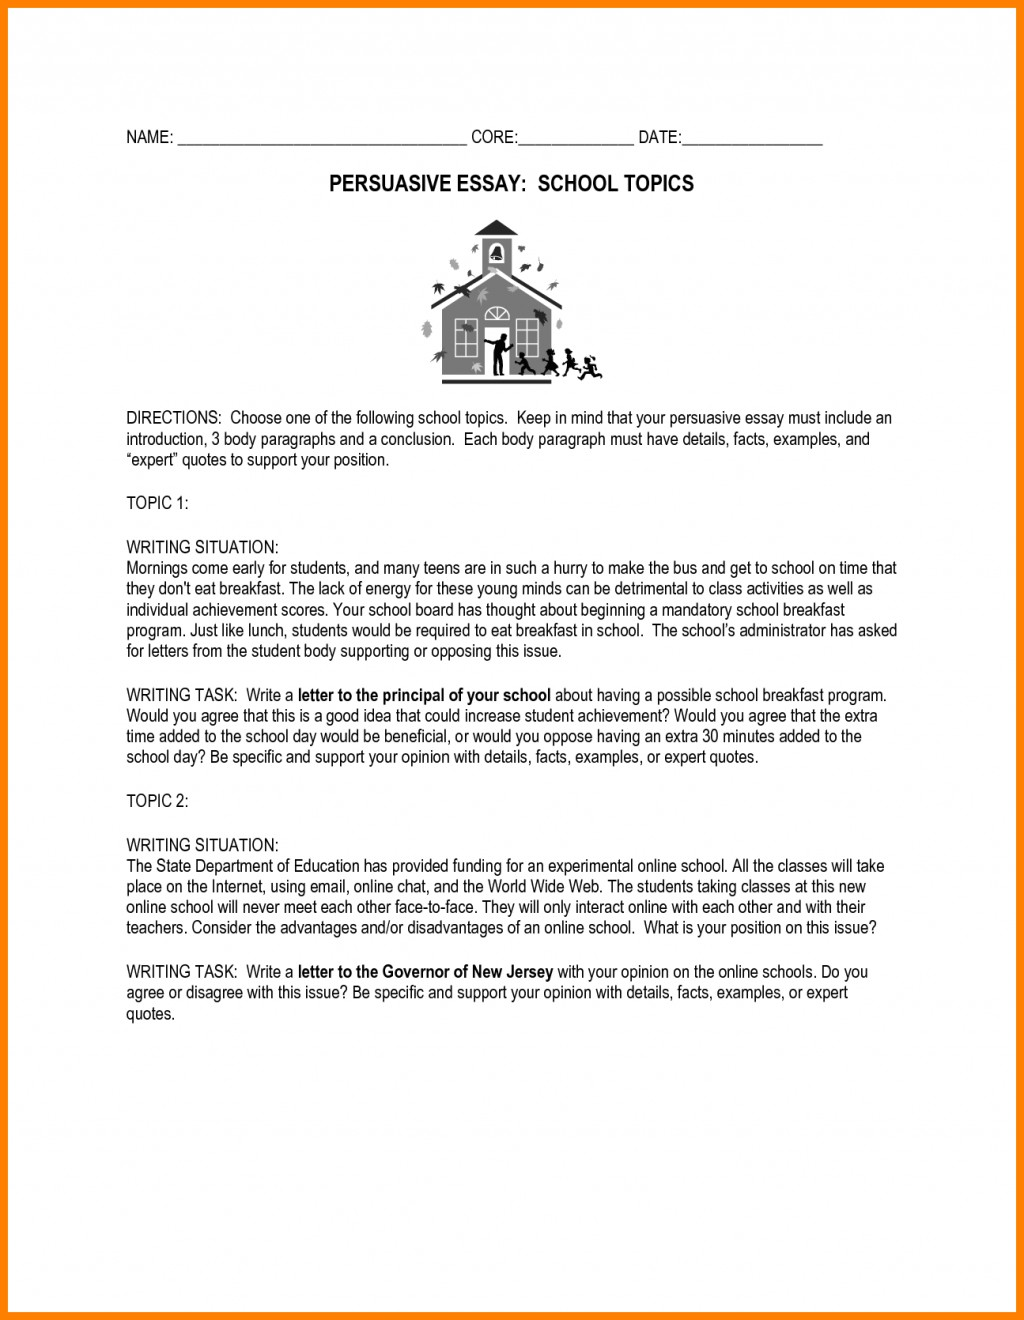 013 Persuasive Essays Topics For High School Essay Paper Research Introduction Sample Outline Topic Remarkable Students Schoolers Interesting Argumentative Large